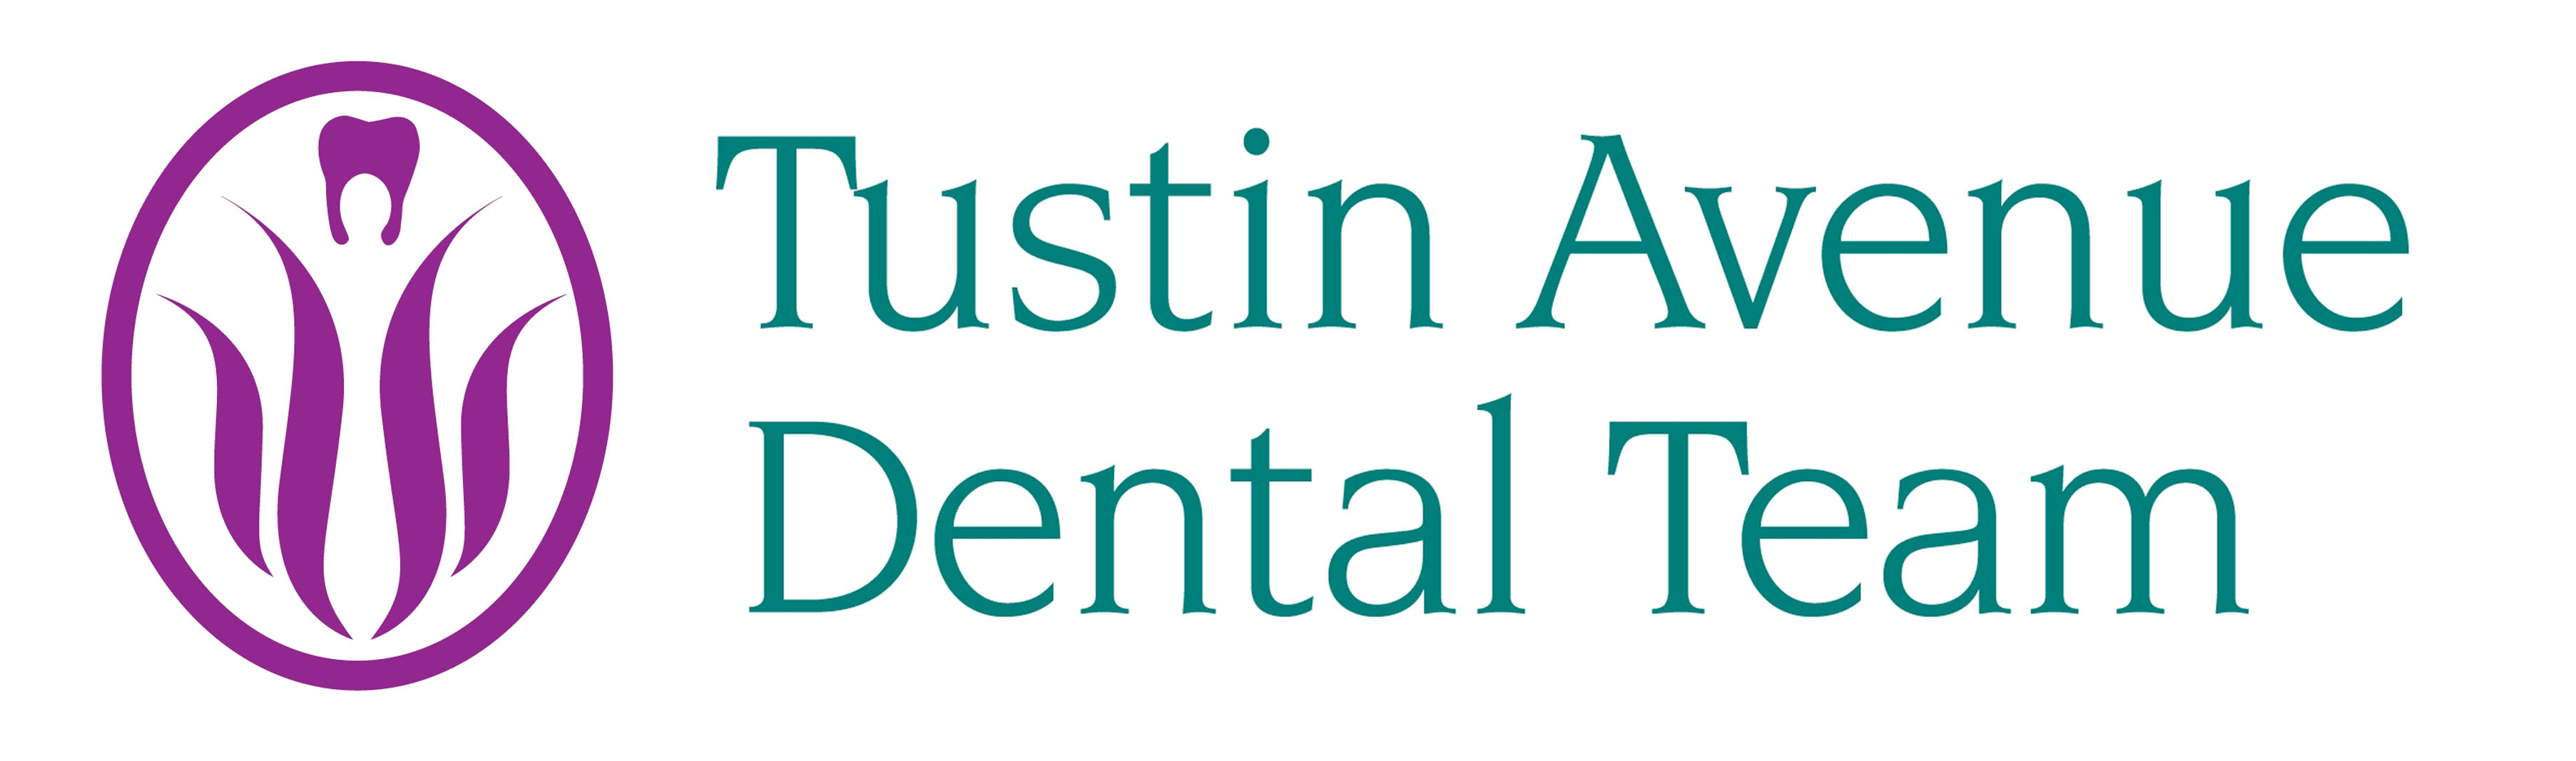 Tustin Avenue Dental Team